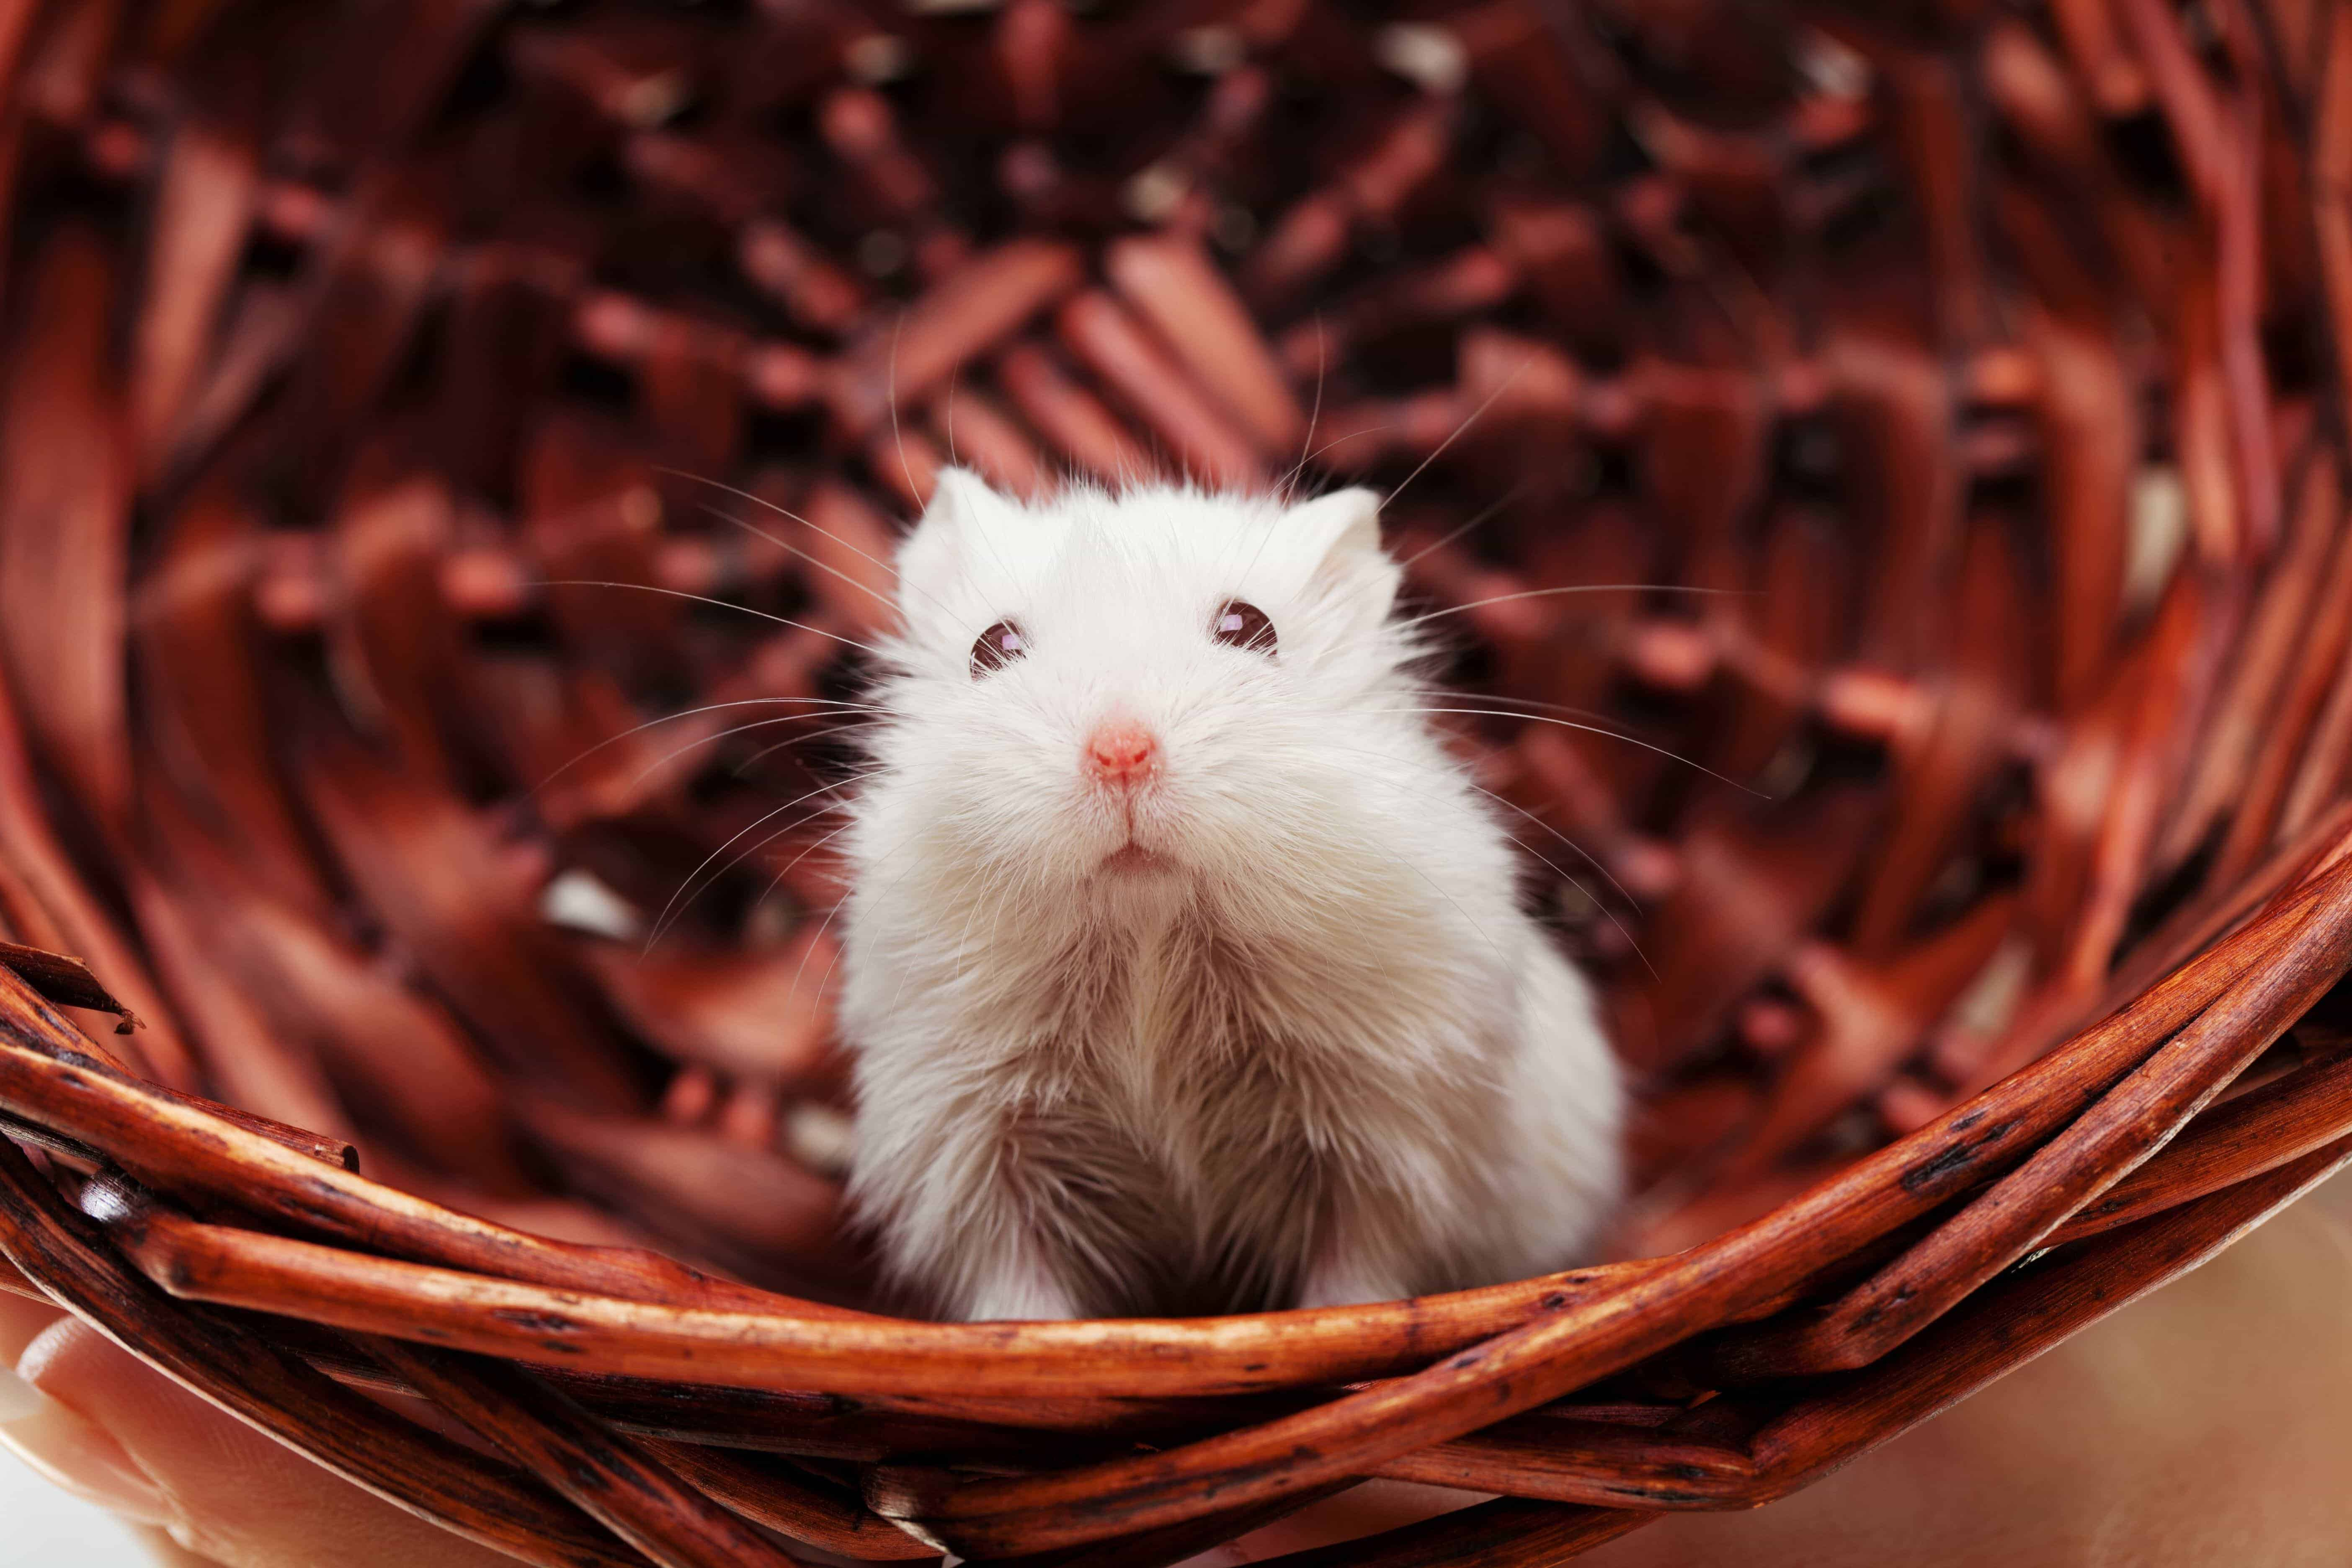 white-mouse-in-basket-185282860-57ffde793df78cbc28942823